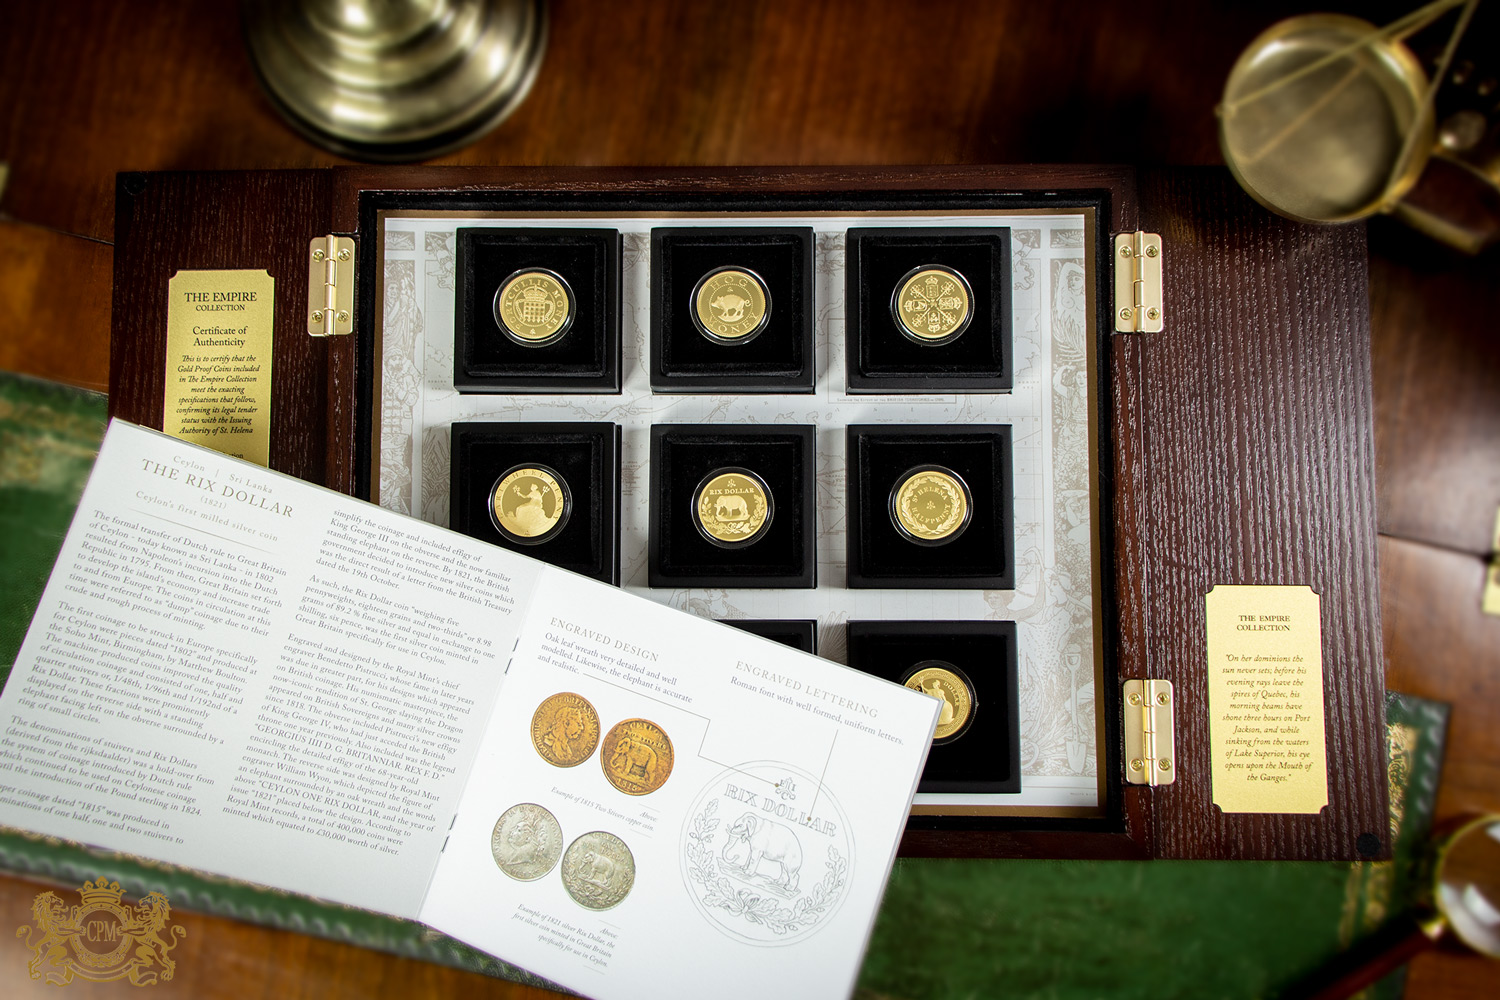 2019 Empire Collection Nine Gold Coin Proof Set - SOLD OUT